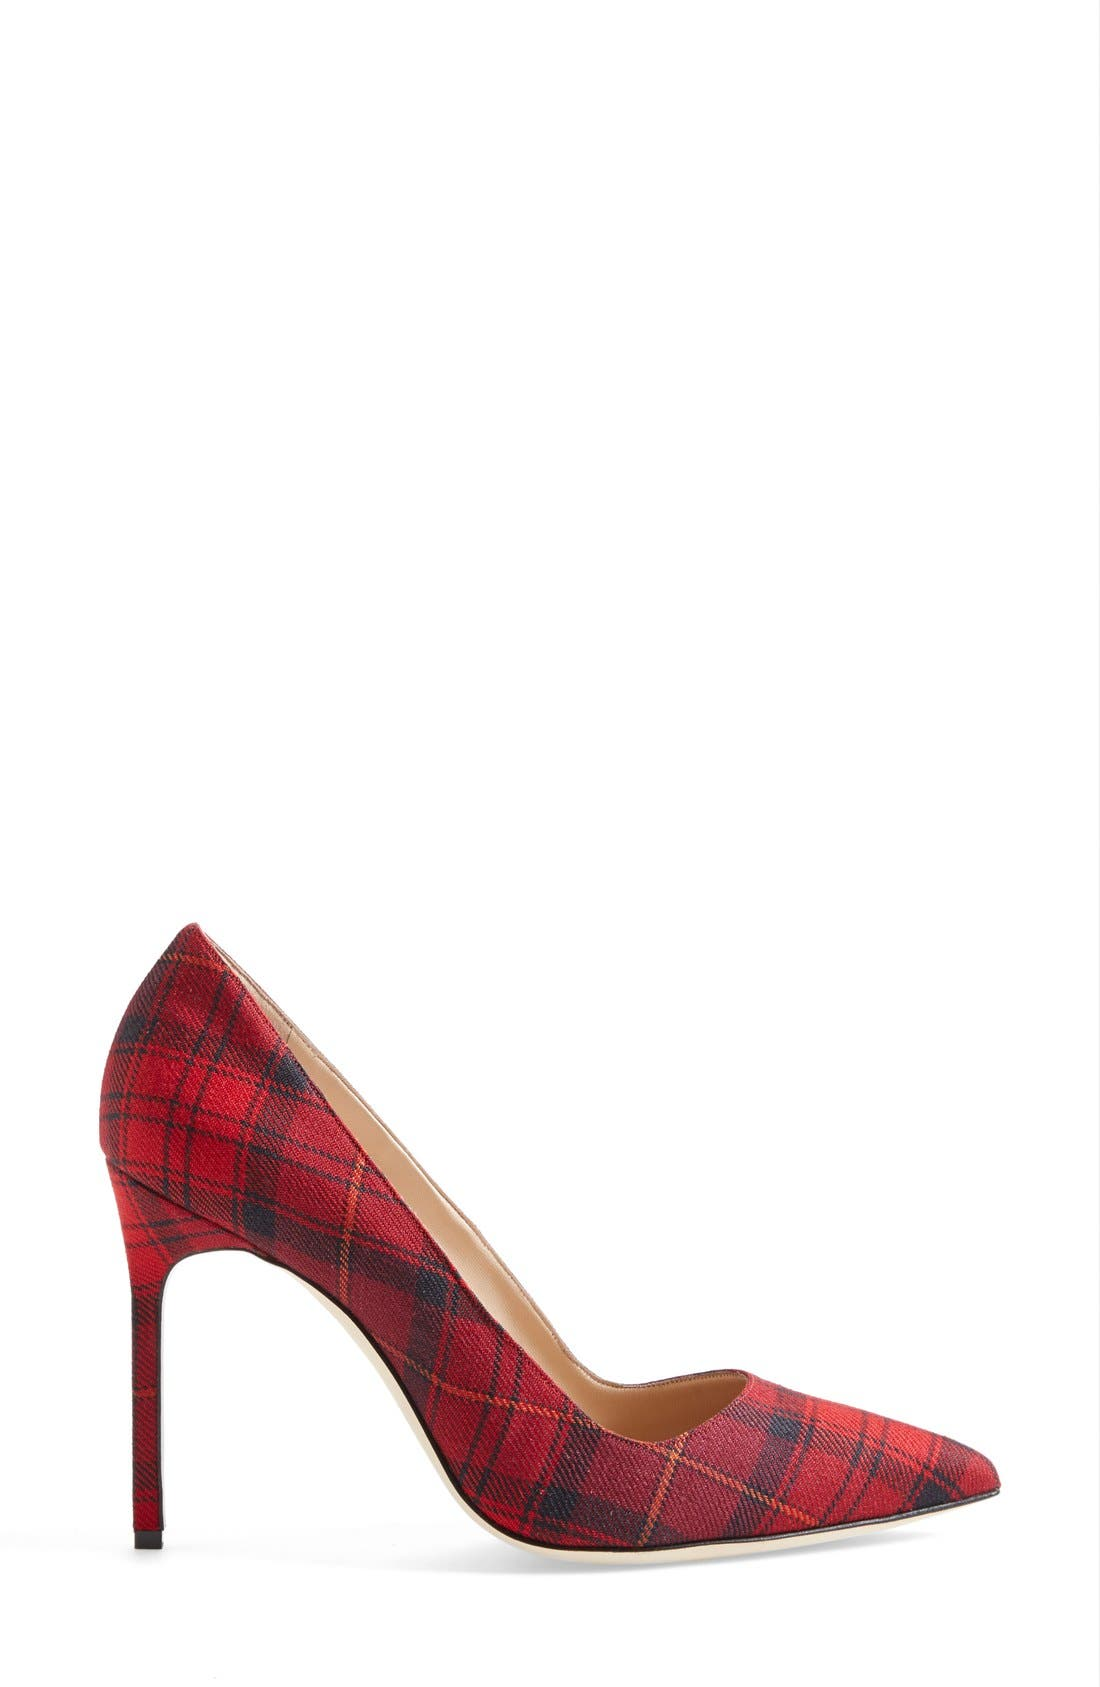 BB Pointy Toe Pump,                             Alternate thumbnail 4, color,                             Red Plaid Fabric